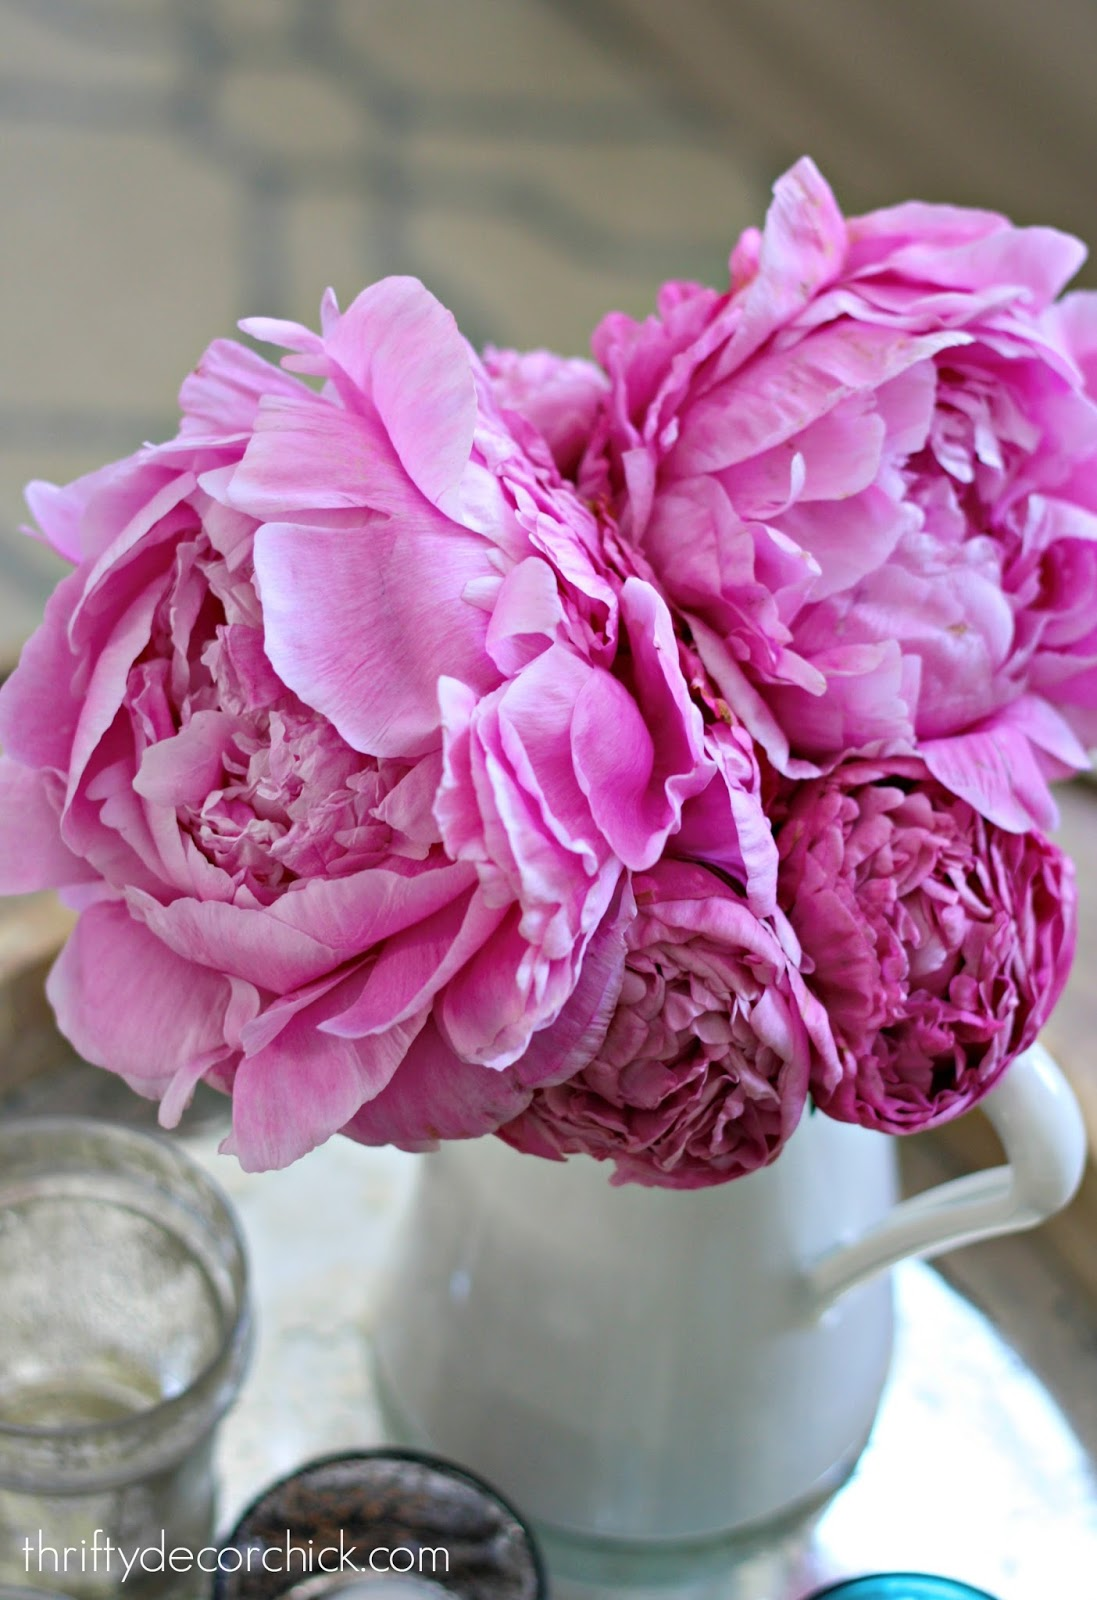 How to grow beautiful peonies